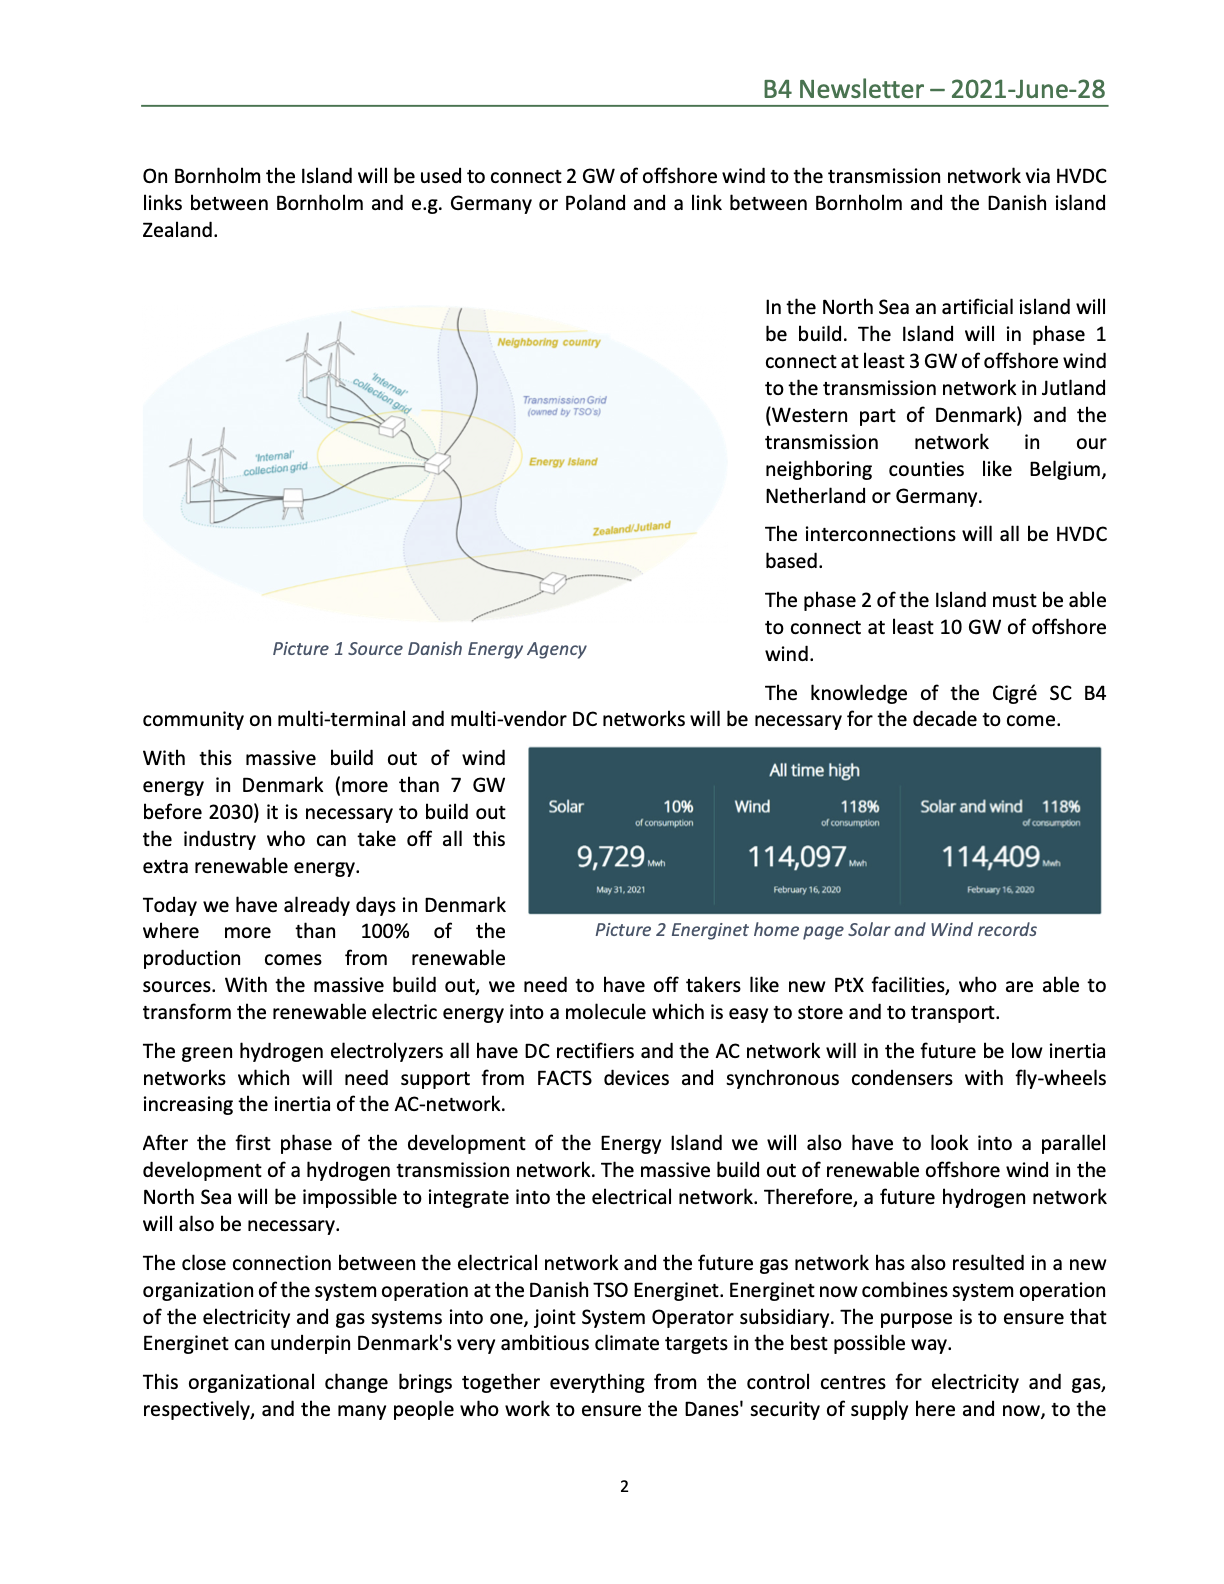 B4Newsletter_2021-June-28_Page2